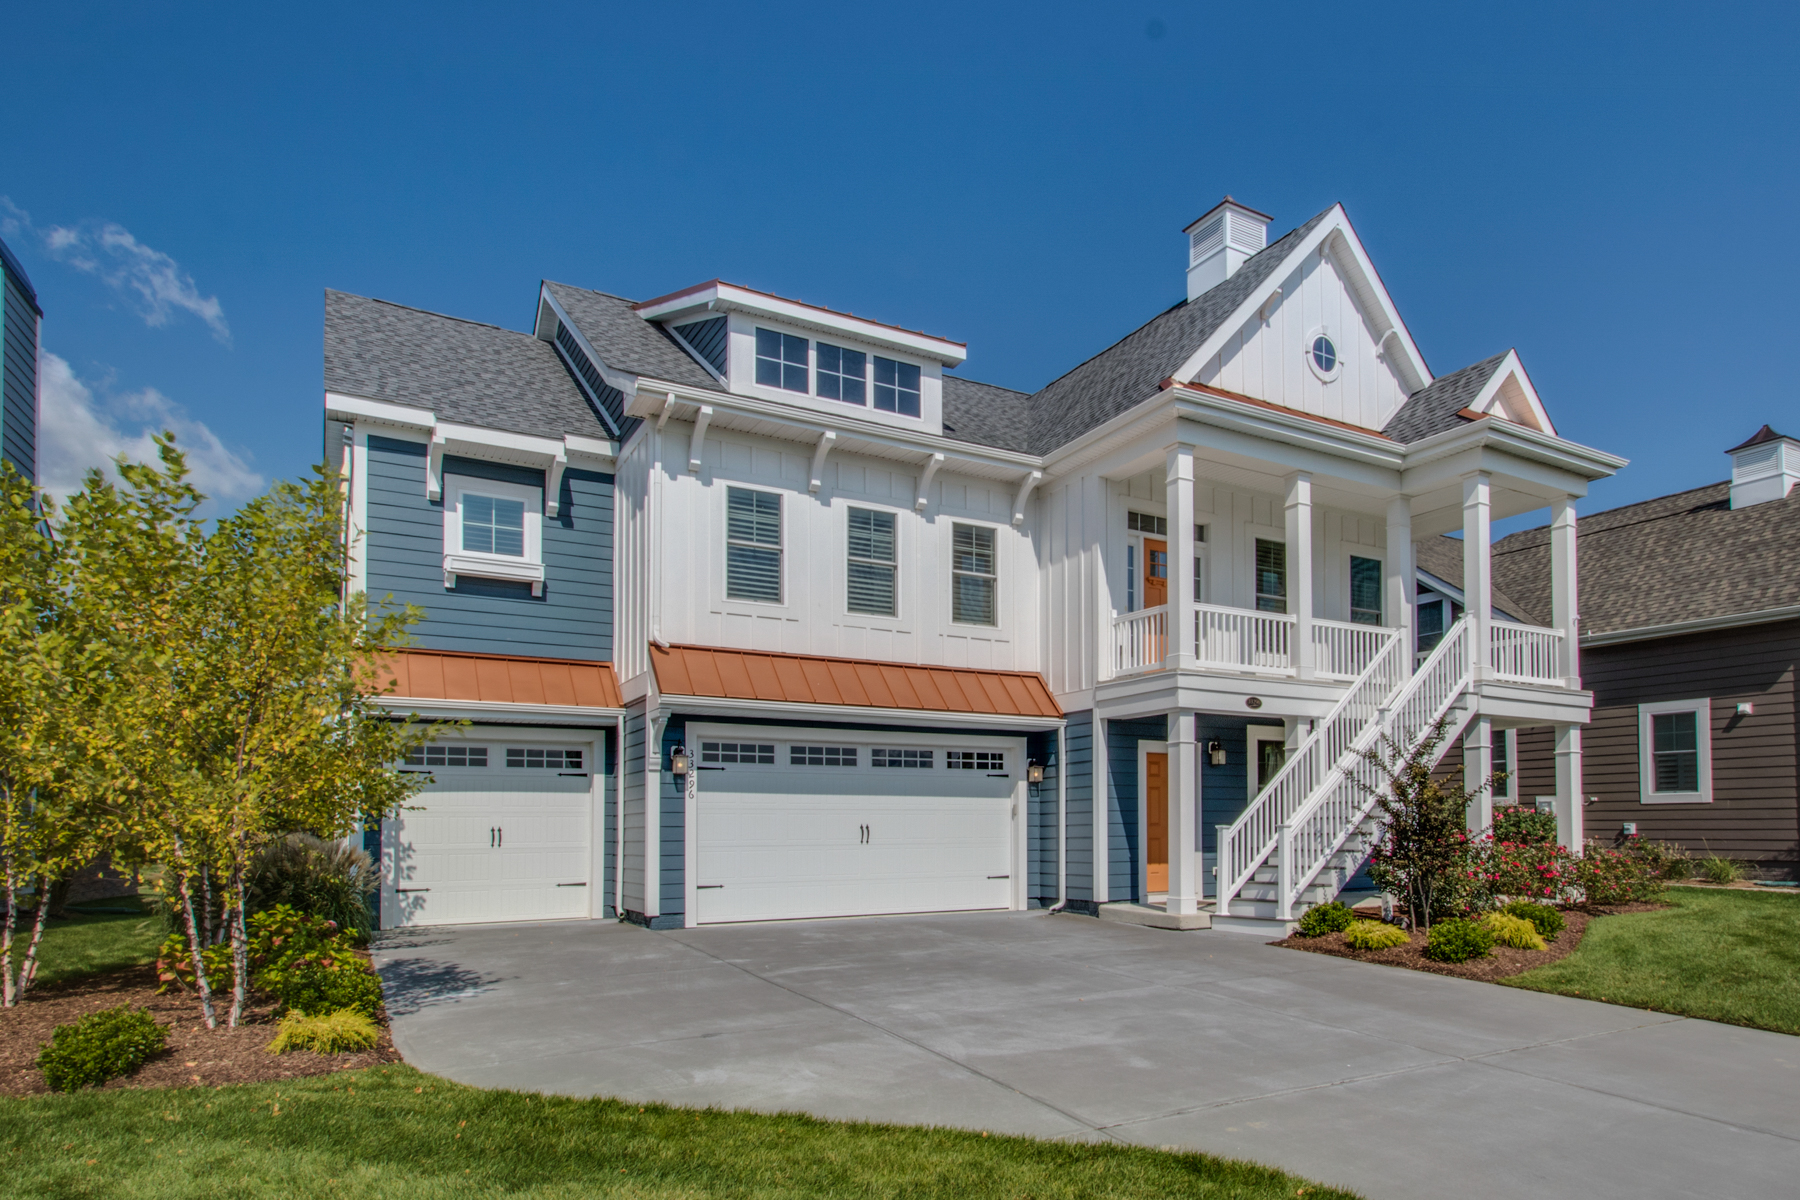 Single Family Home for Sale at 33296 Marina Bay Circle , Millsboro, DE 19966 33296 Marina Bay Circle, Millsboro, Delaware 19966 United States